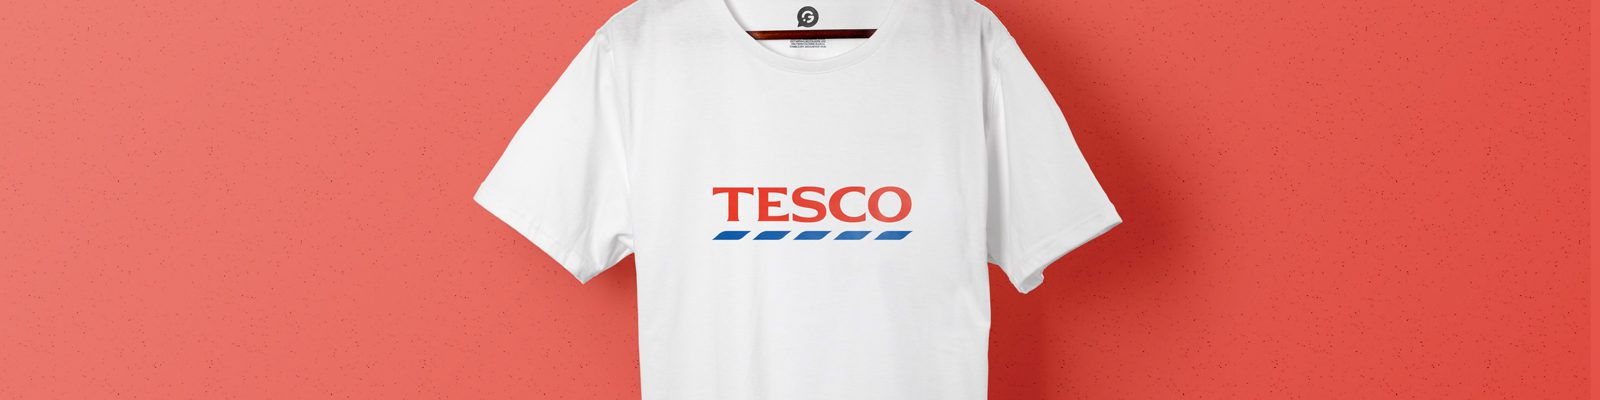 See How Printed Uniforms Made Tesco a Brand Leader - Header Image